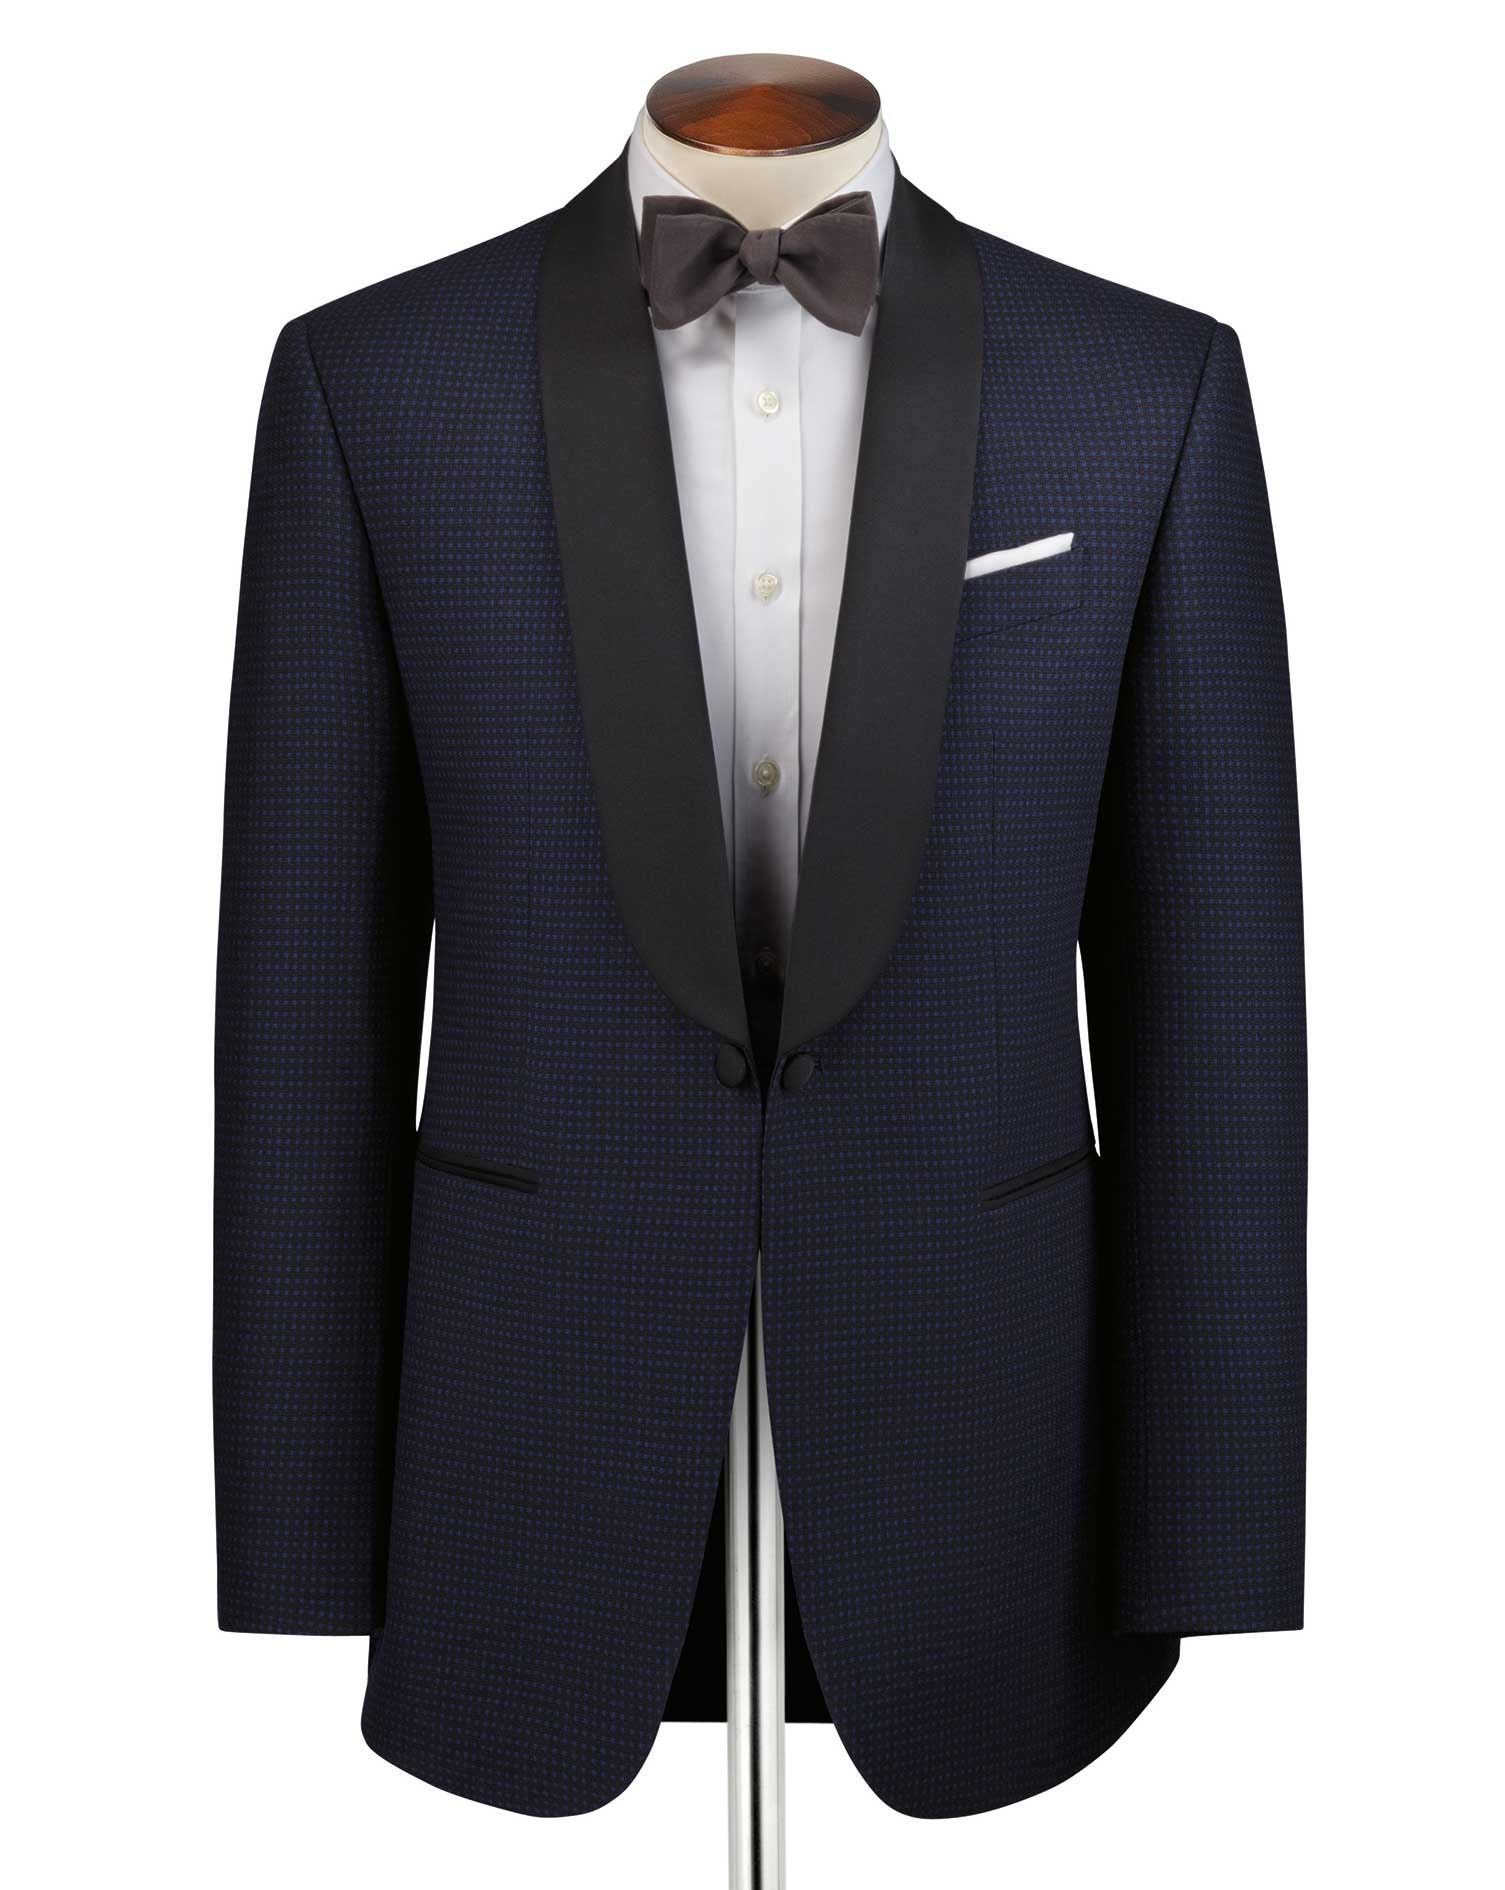 Navy and Blue Slim Fit Shawl Collar Tuxedo Suit Wool Jacket Size 40 Regular by Charles Tyrwhitt